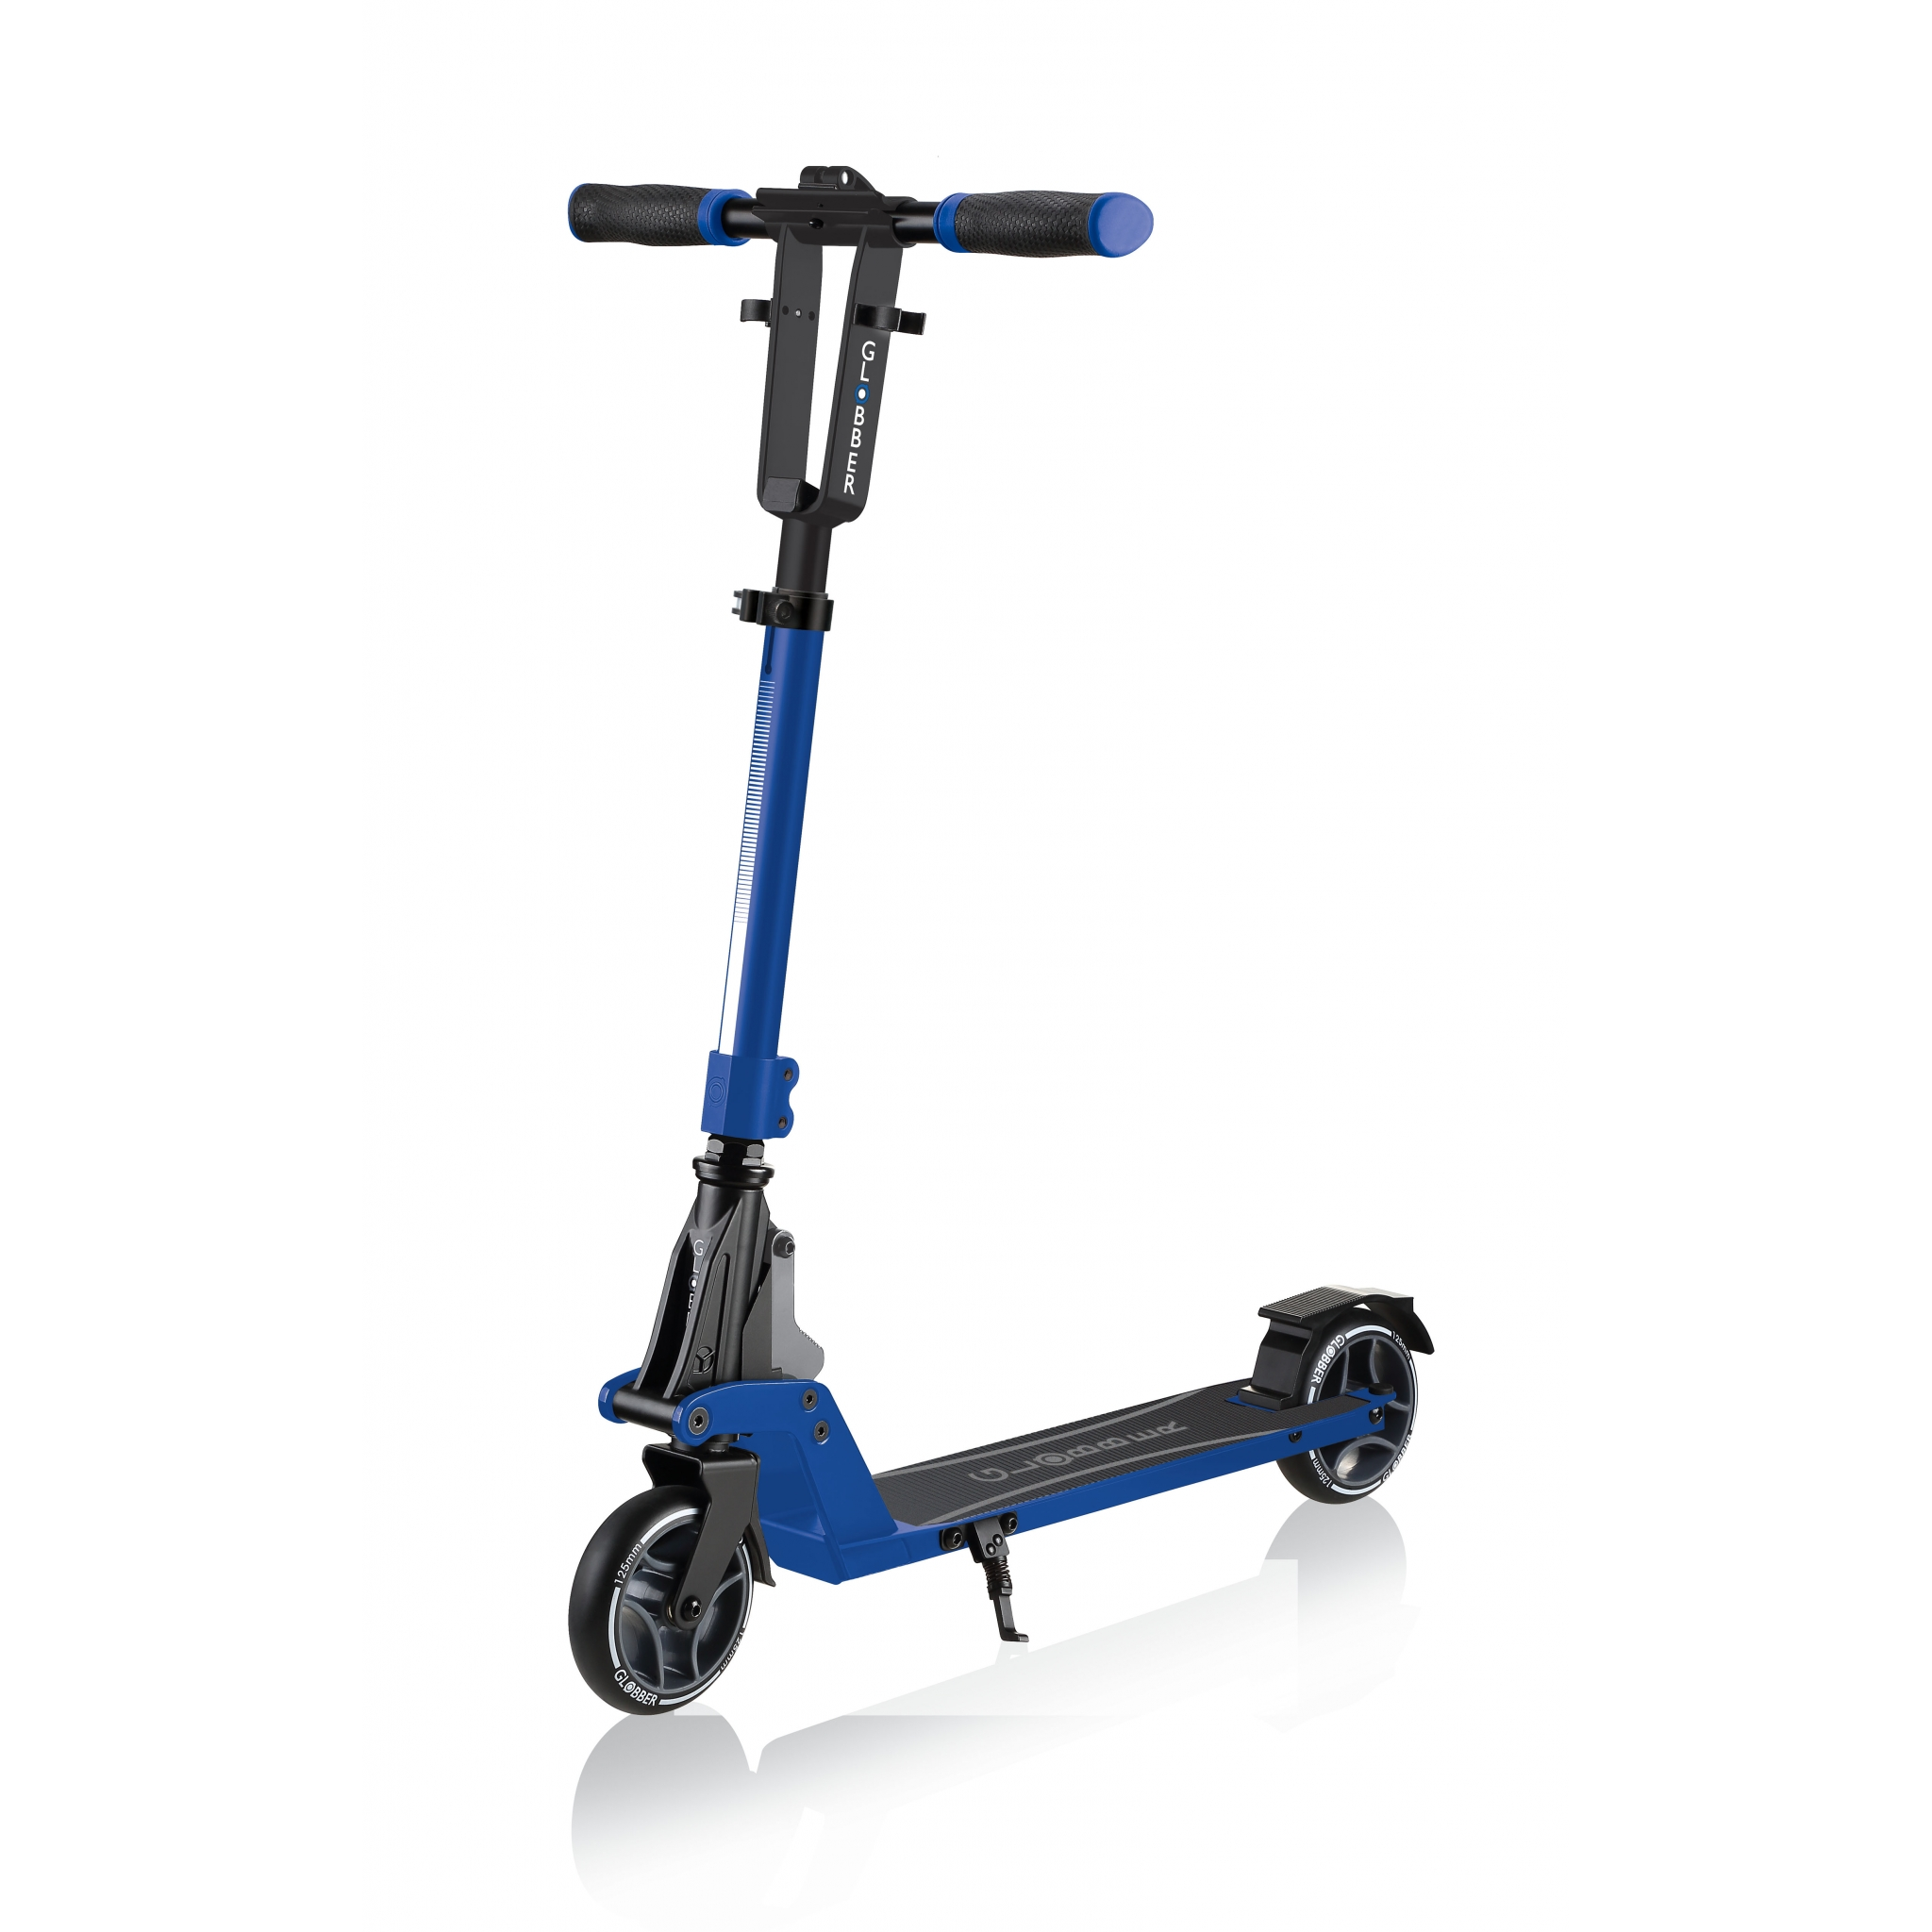 ONE-K-125-kick-and-fold-2-wheel-foldable-scooter-for-kids-and-teens-aged-8-and-above_blue 0